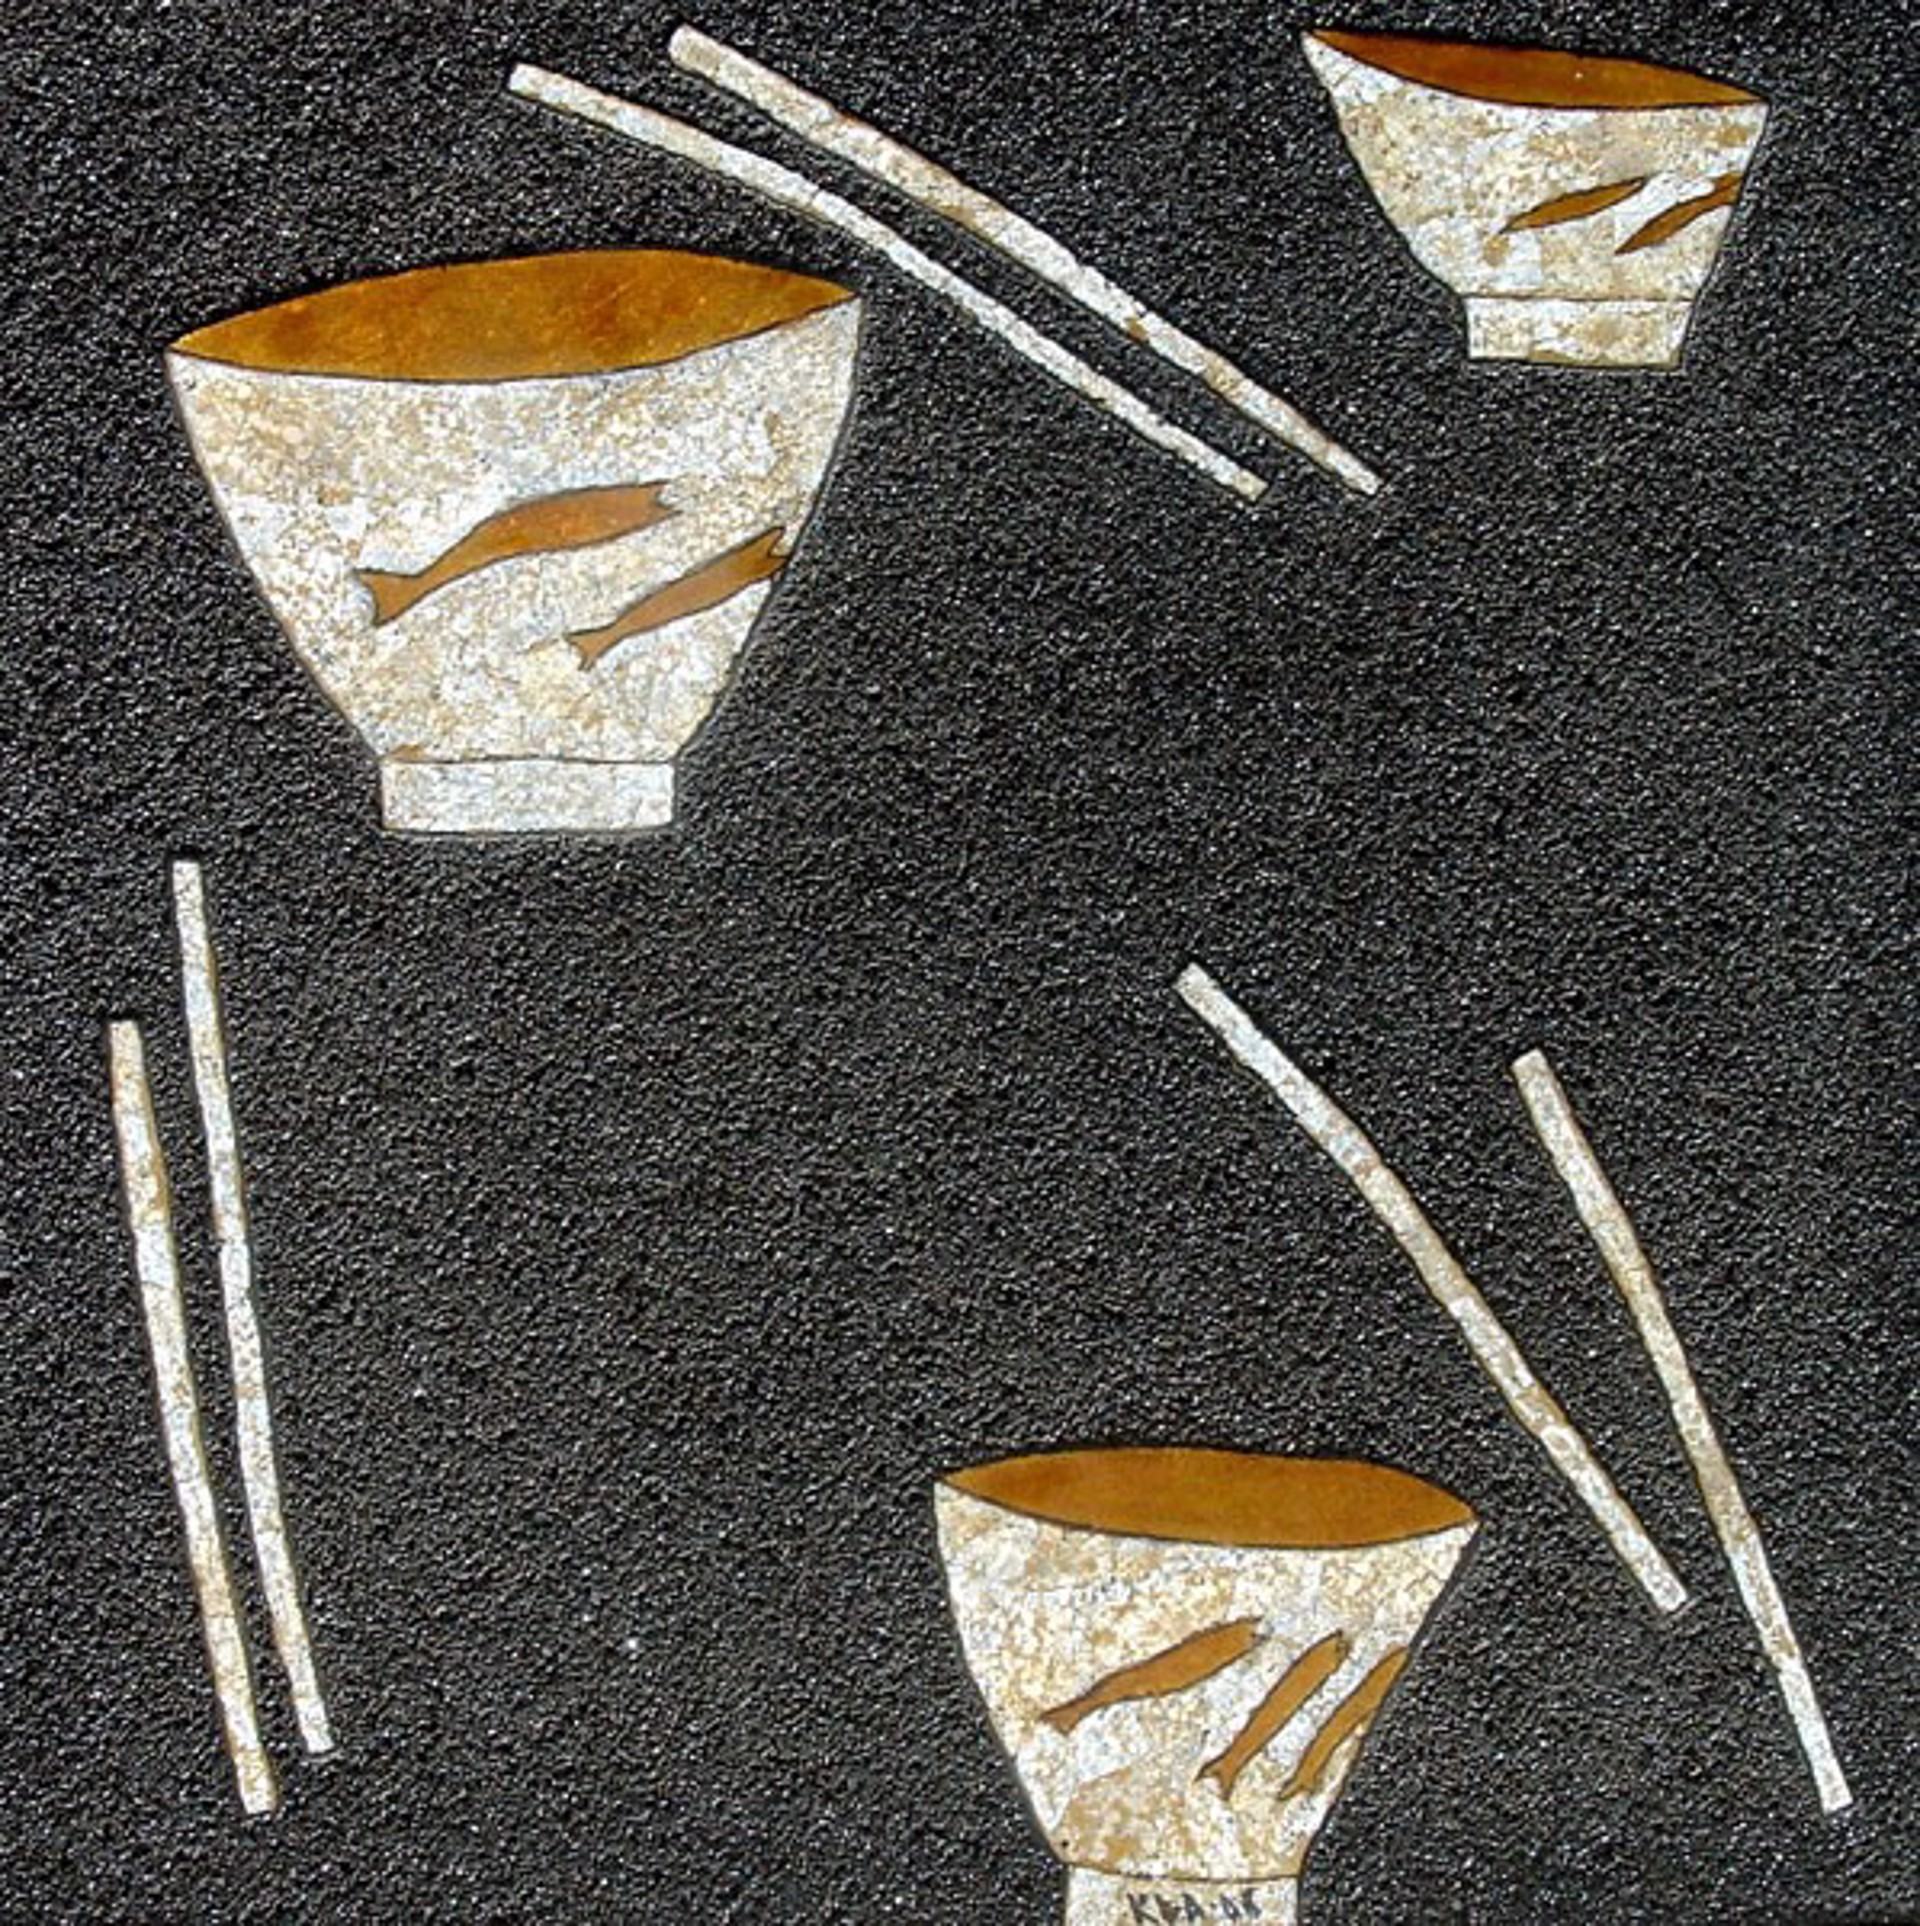 Common Bowl II by Bui Cong Khanh